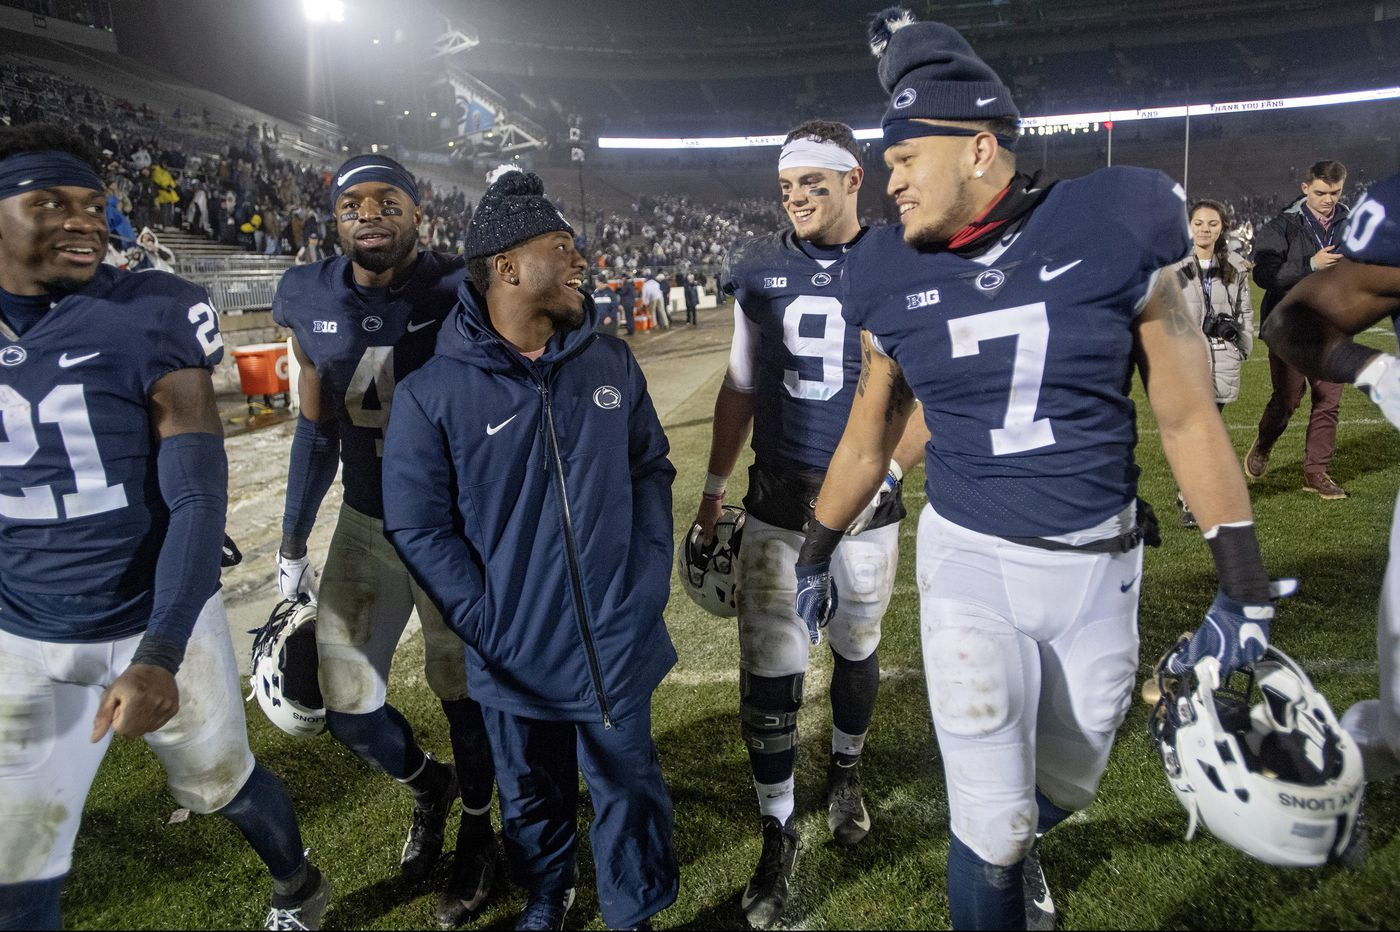 Penn State seniors take victory lap at Beaver Stadium